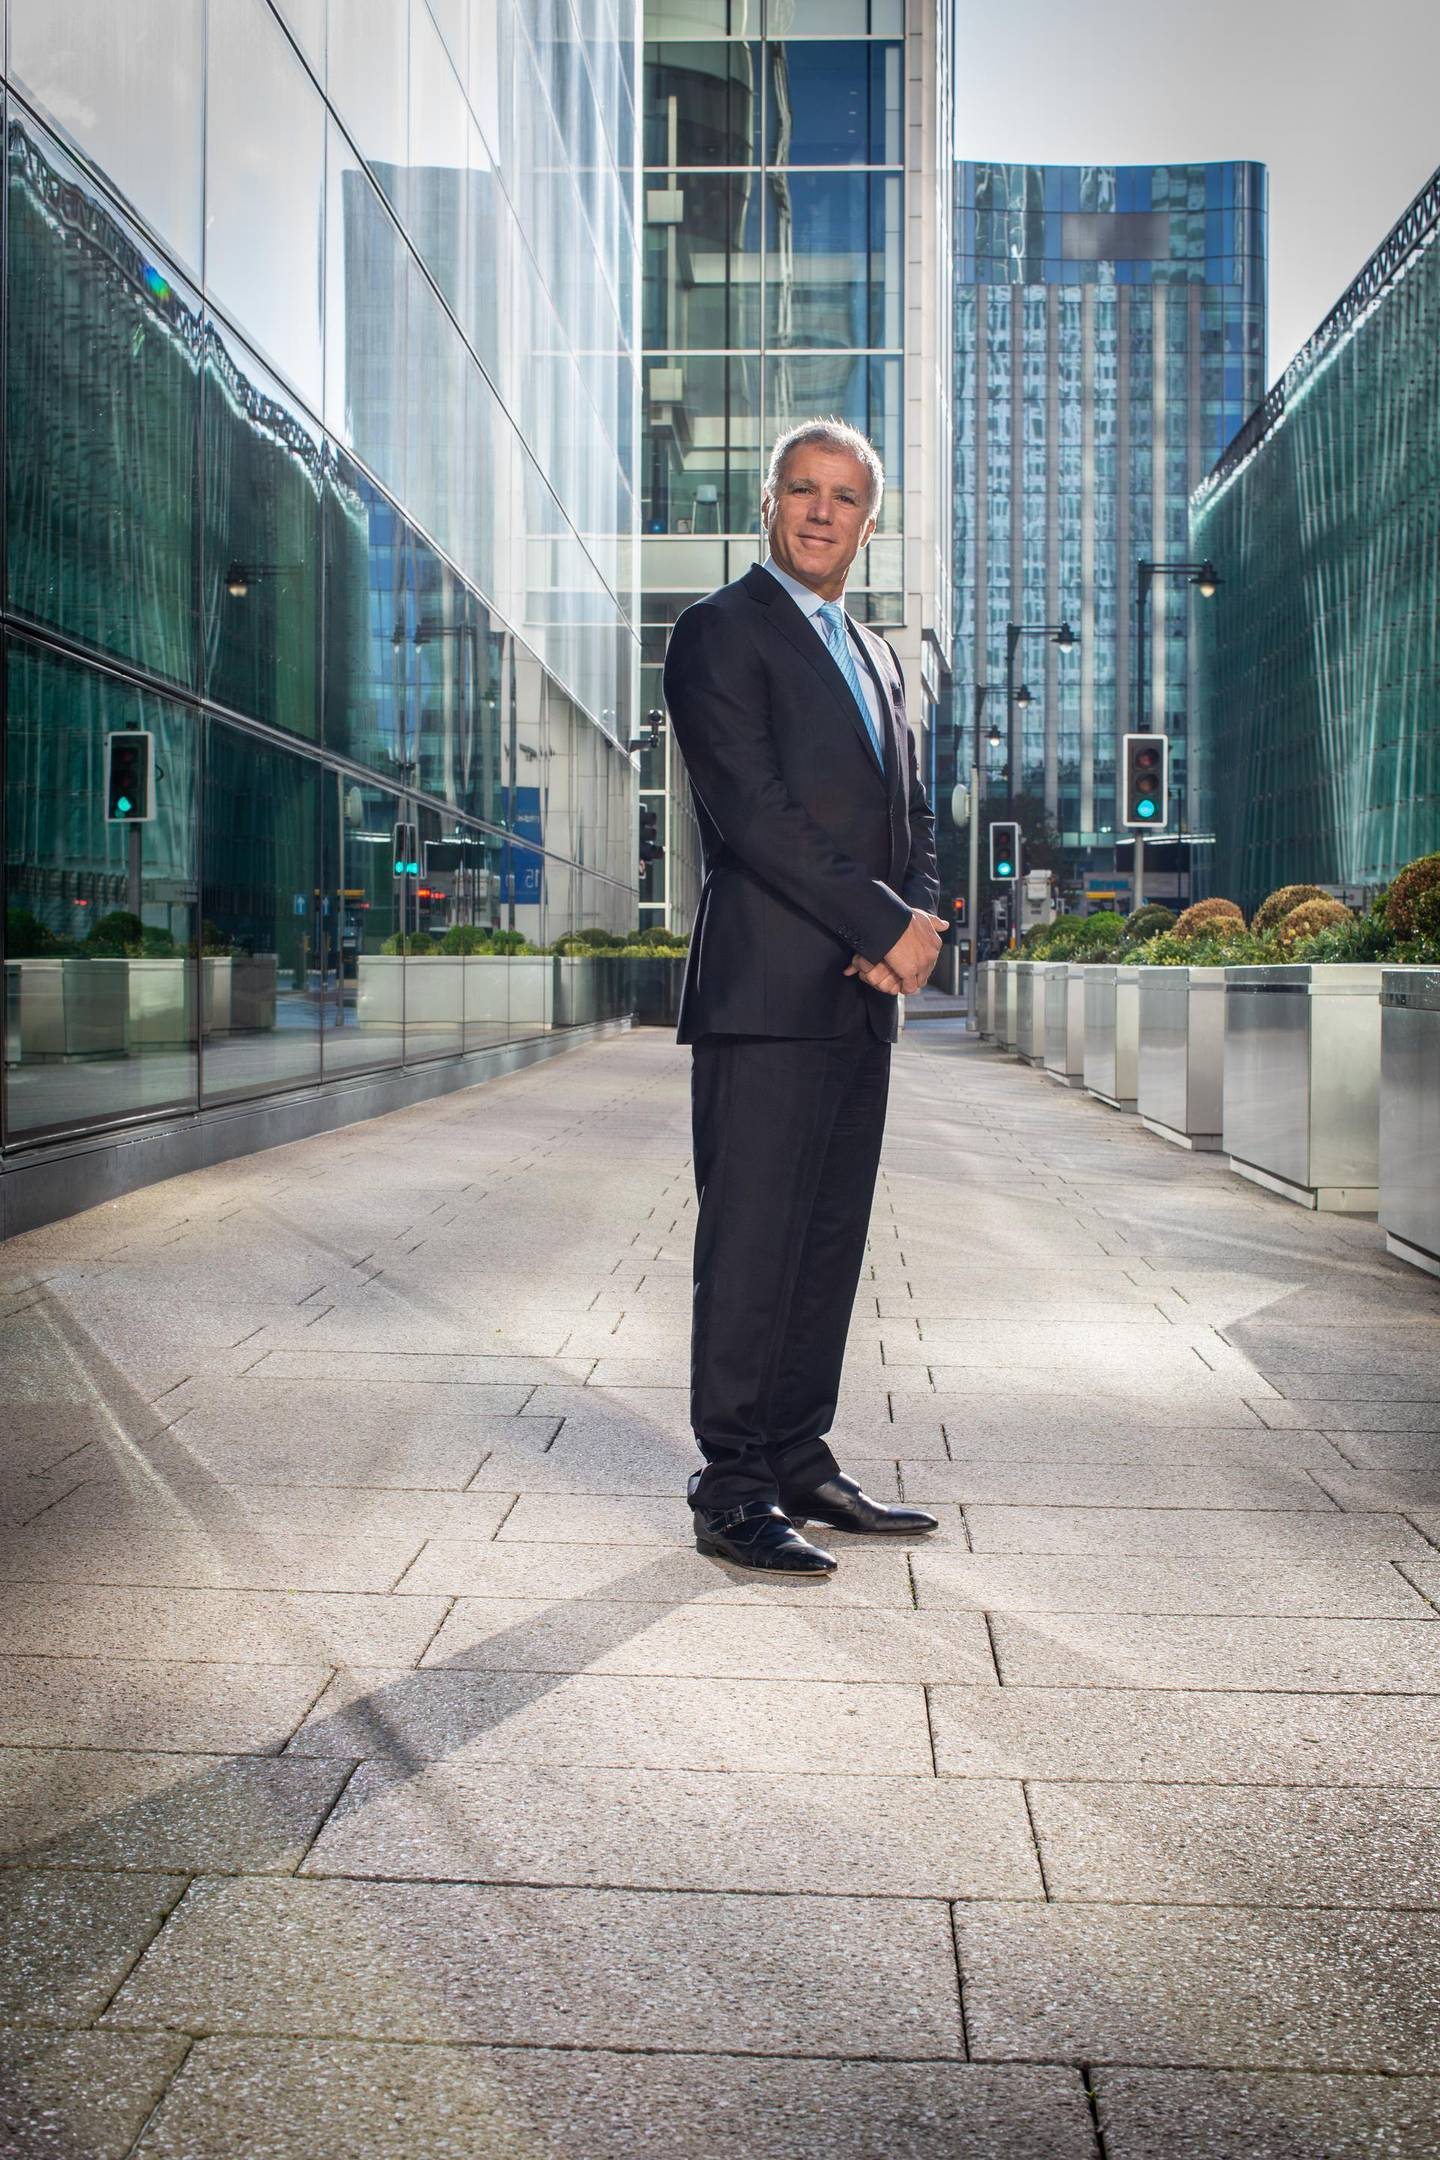 Georges Elhedery, Co-CEO of Global Banking & Markets at HSBC. PHOTOGRAPHED OUTSIDE OF THE HSBC OFFICES IN CANARY WHARF, LONDON. FOR THE NATIONAL NEWSPAPER.